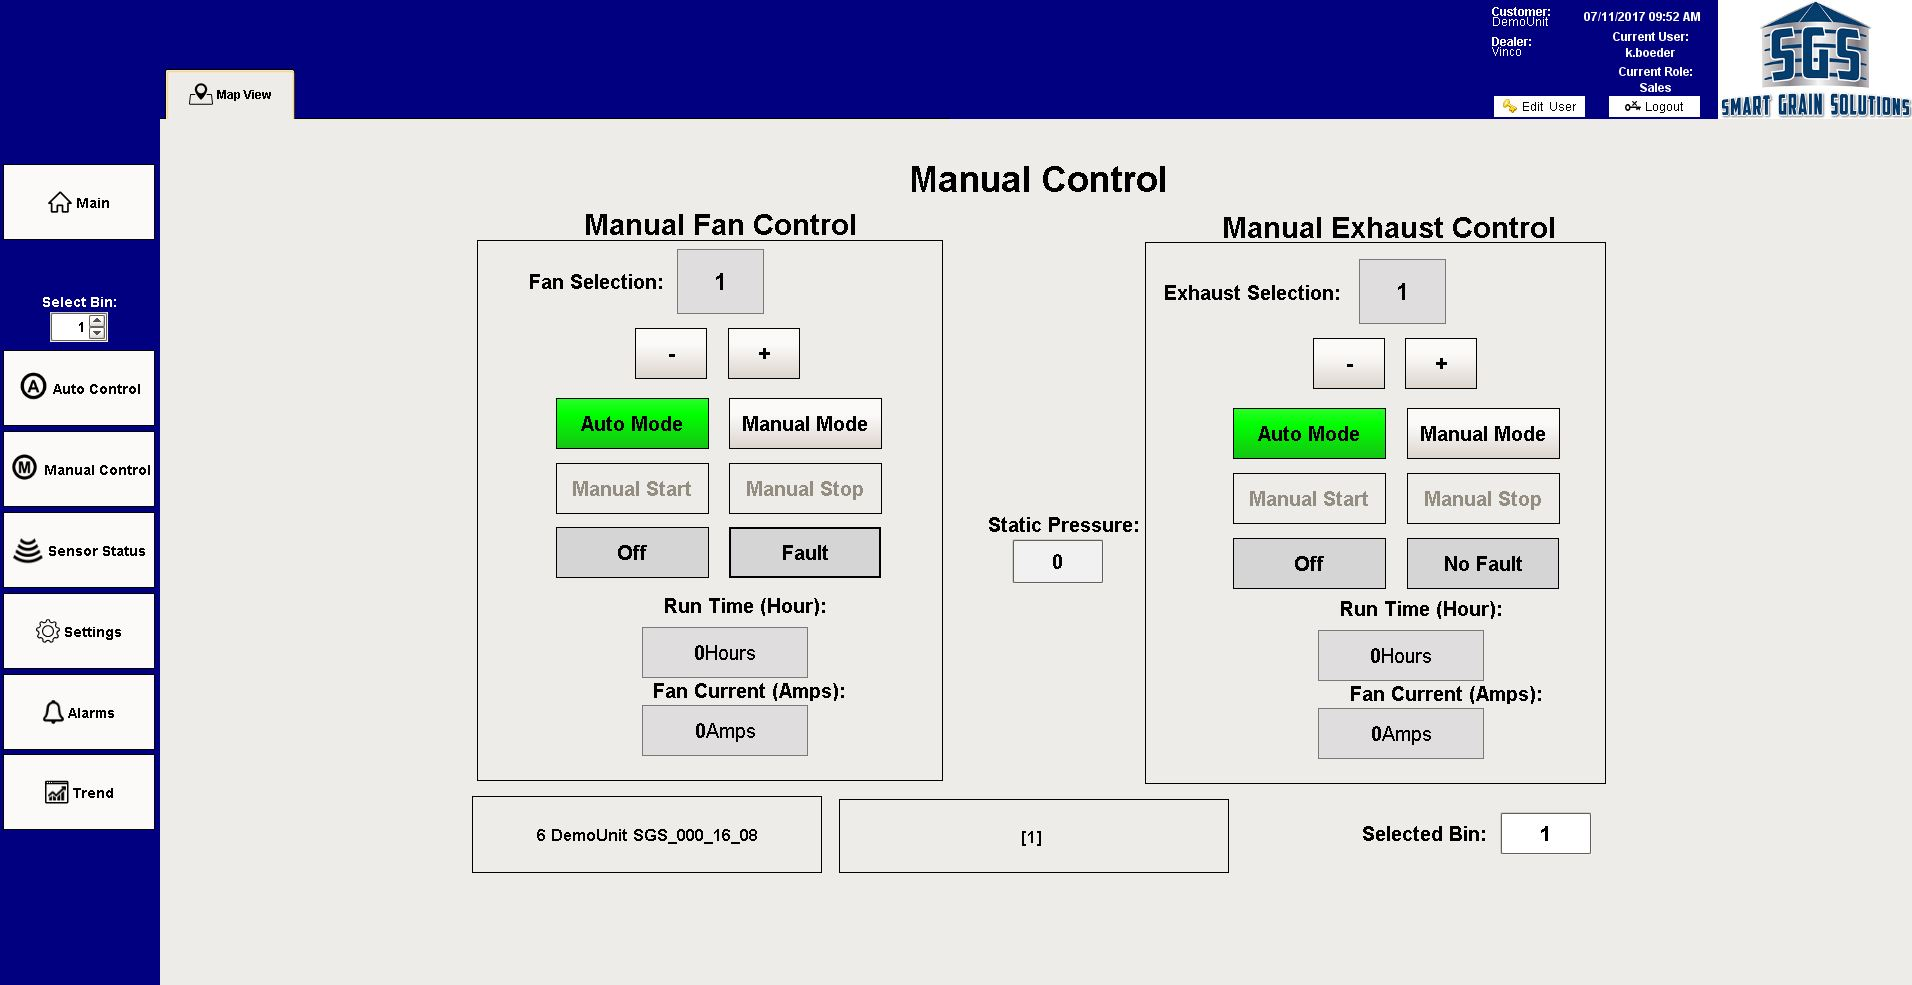 Ignition Manual Control